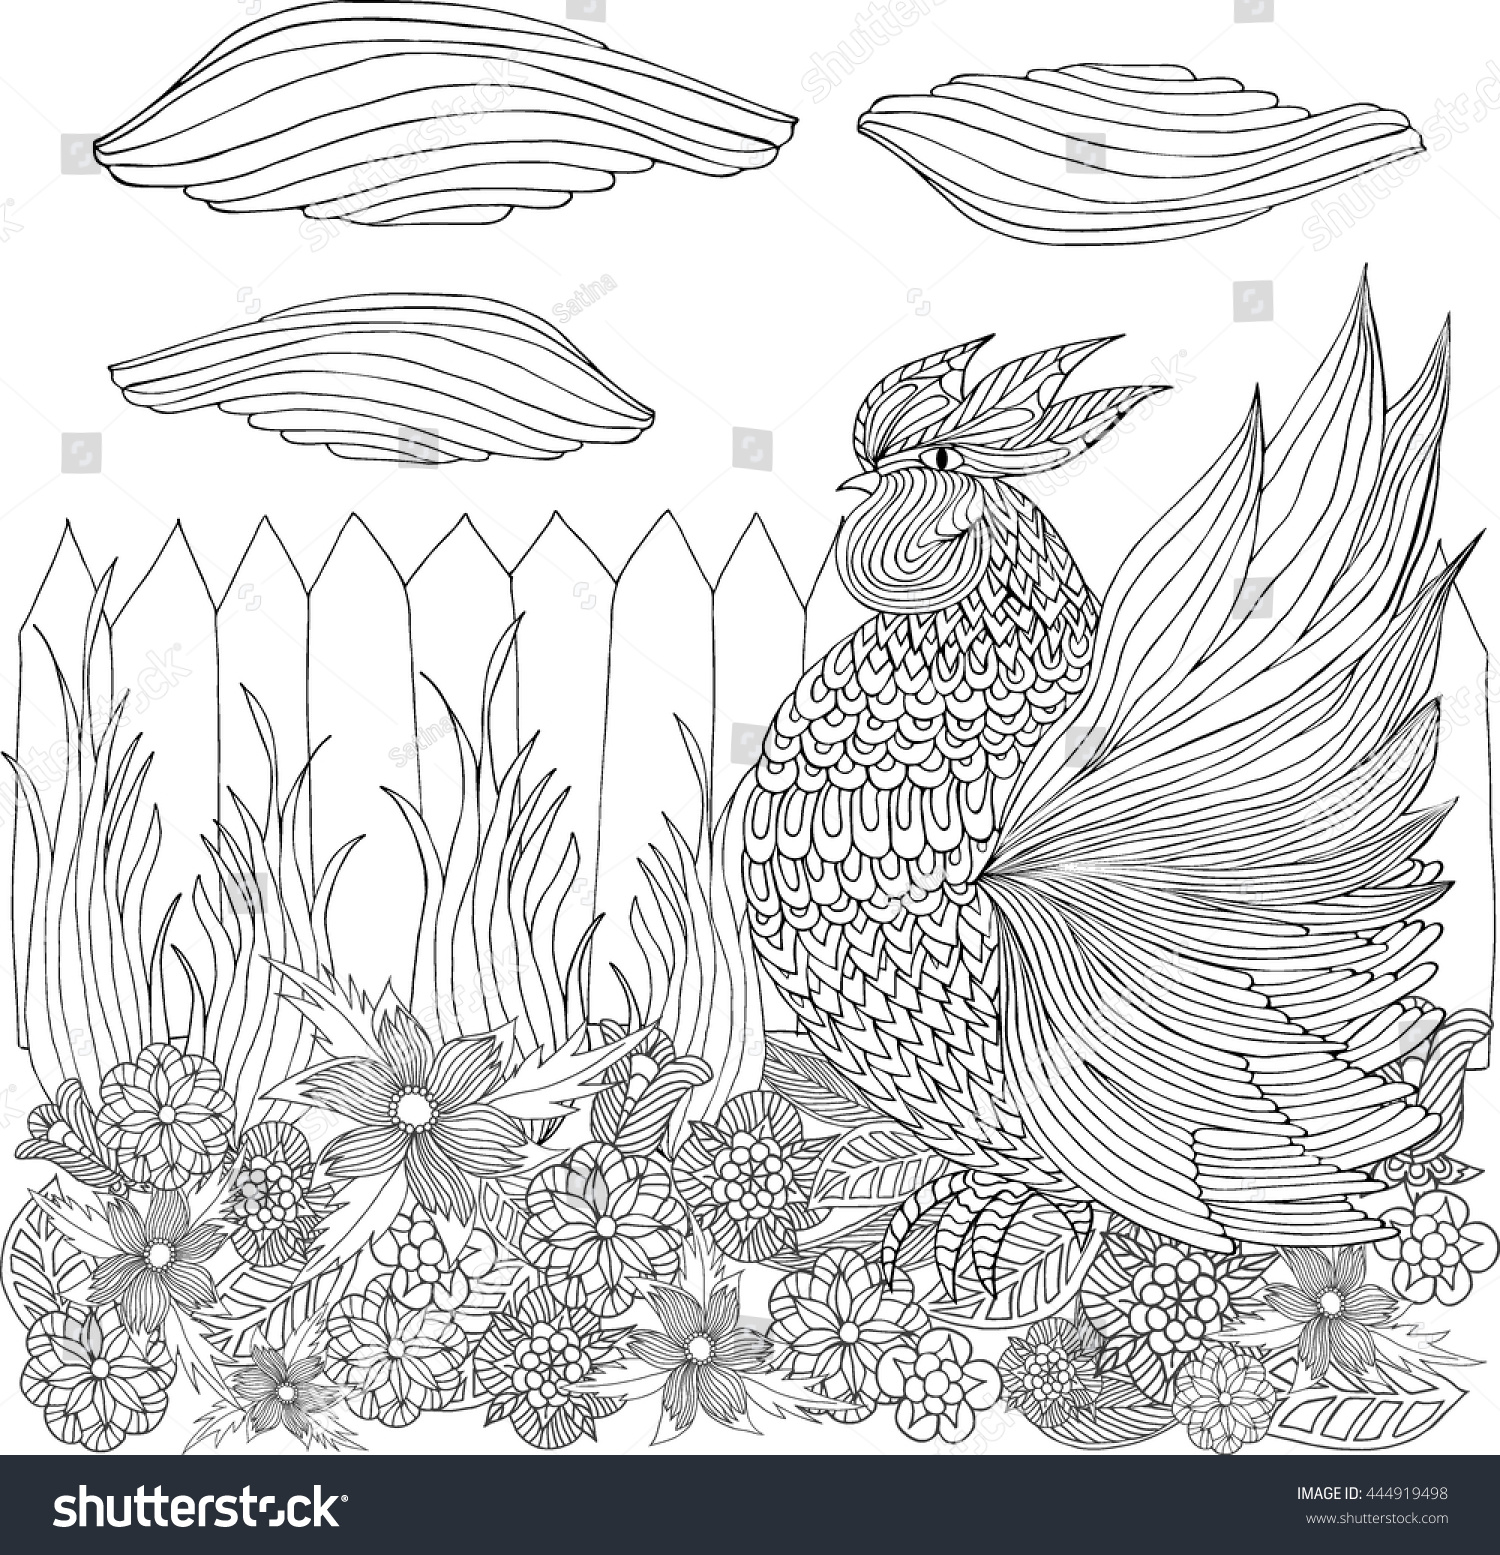 rooster flower garden hand drawn stock vector 444919498